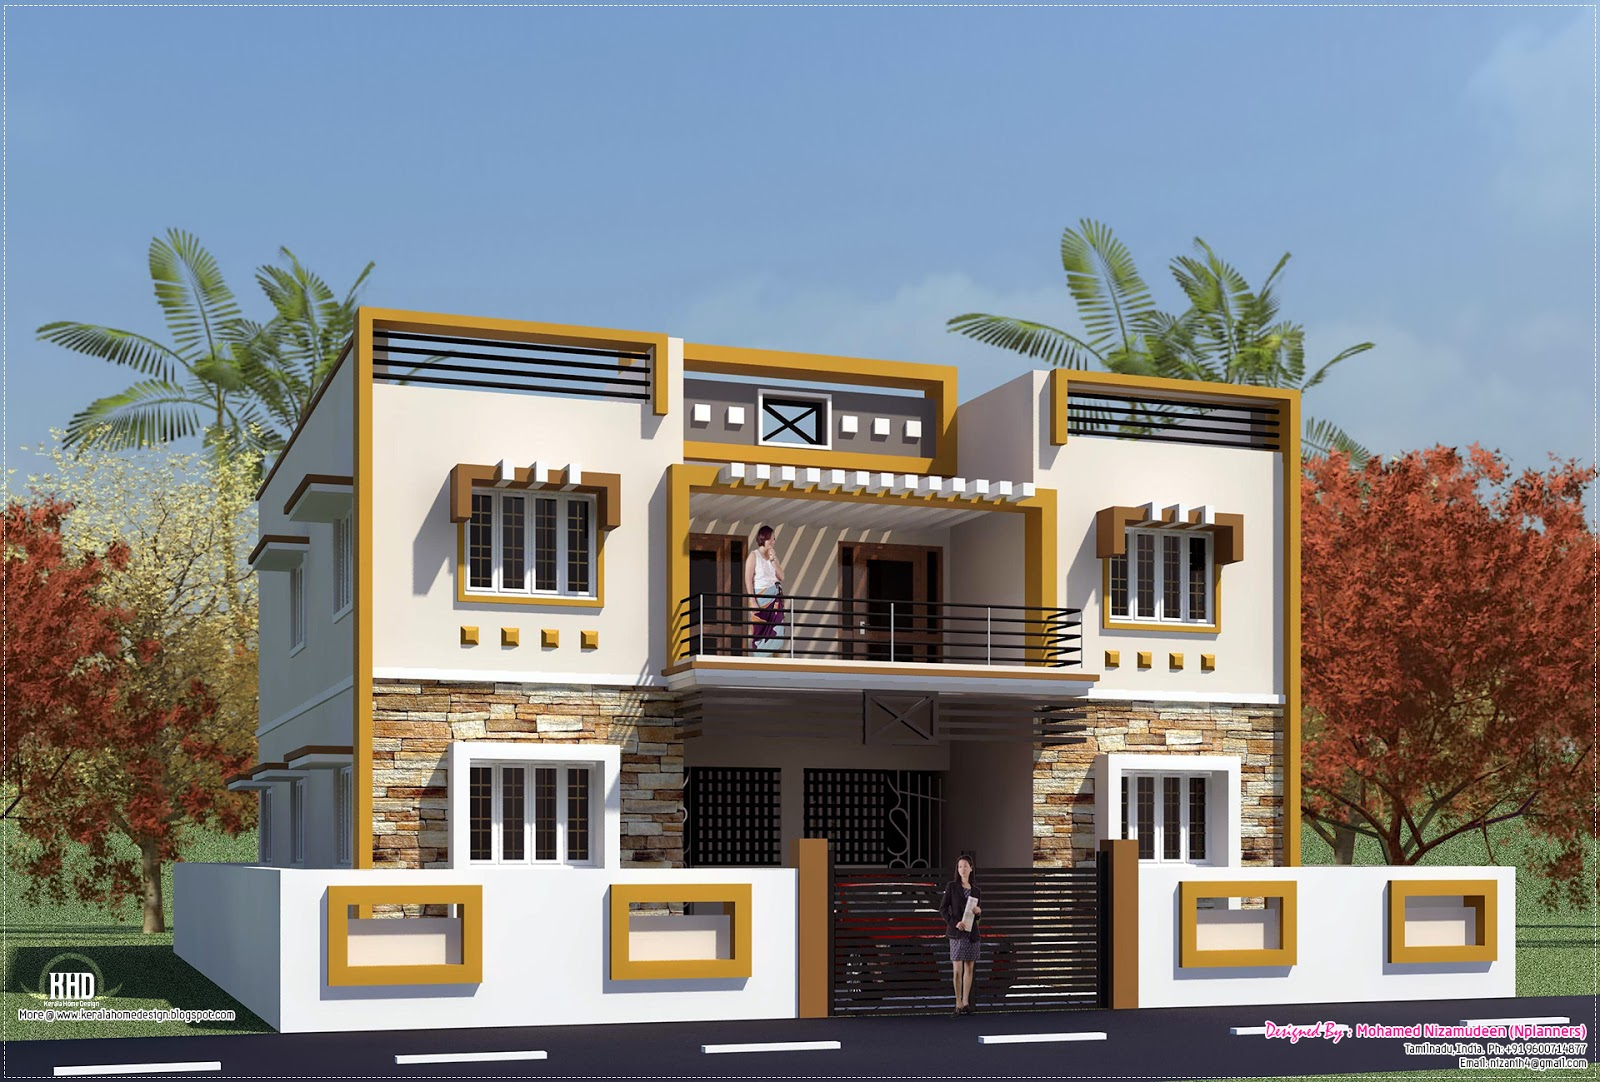 Design Of Small Rcc House